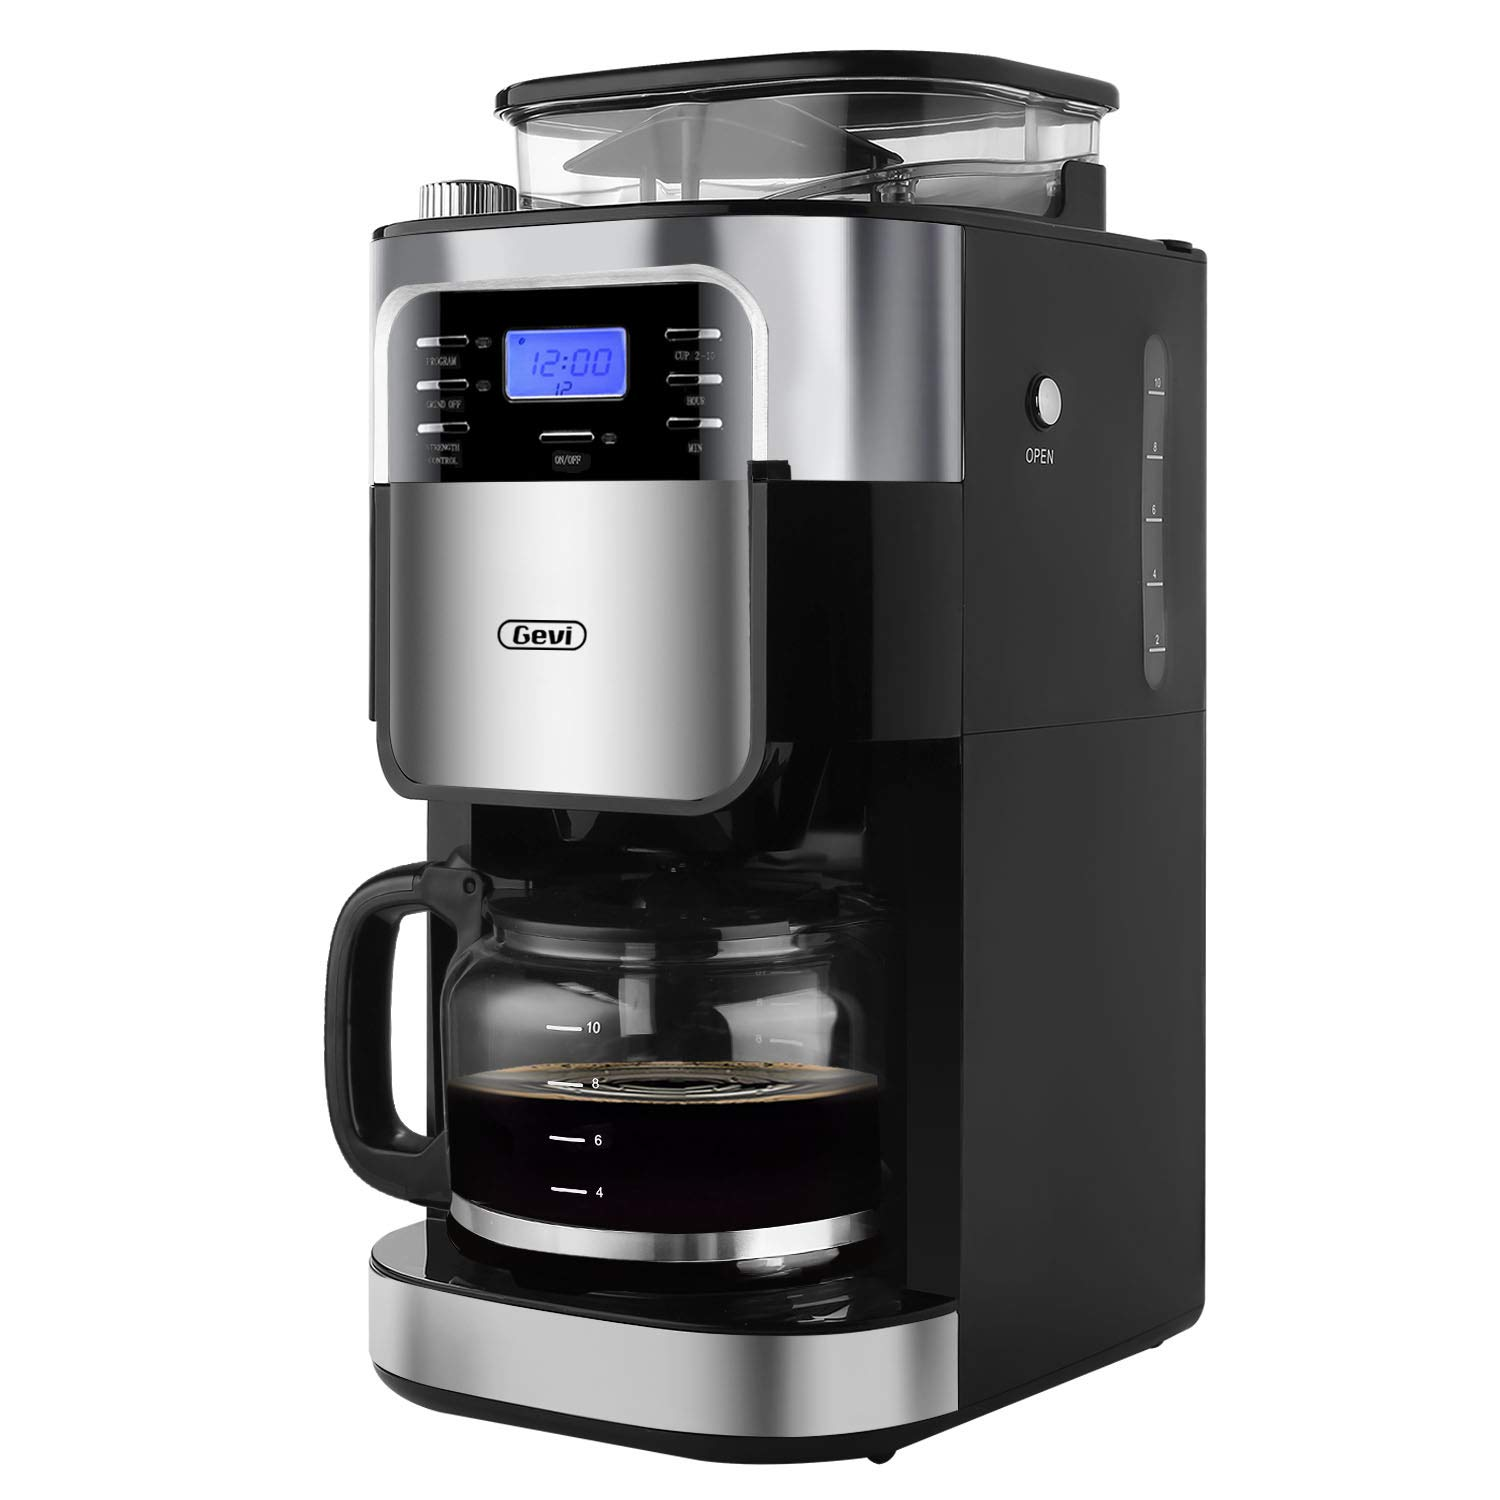 Gevi maker510 Coffee maker, 13.7 x 11.8 x 19.6 inches, Silver